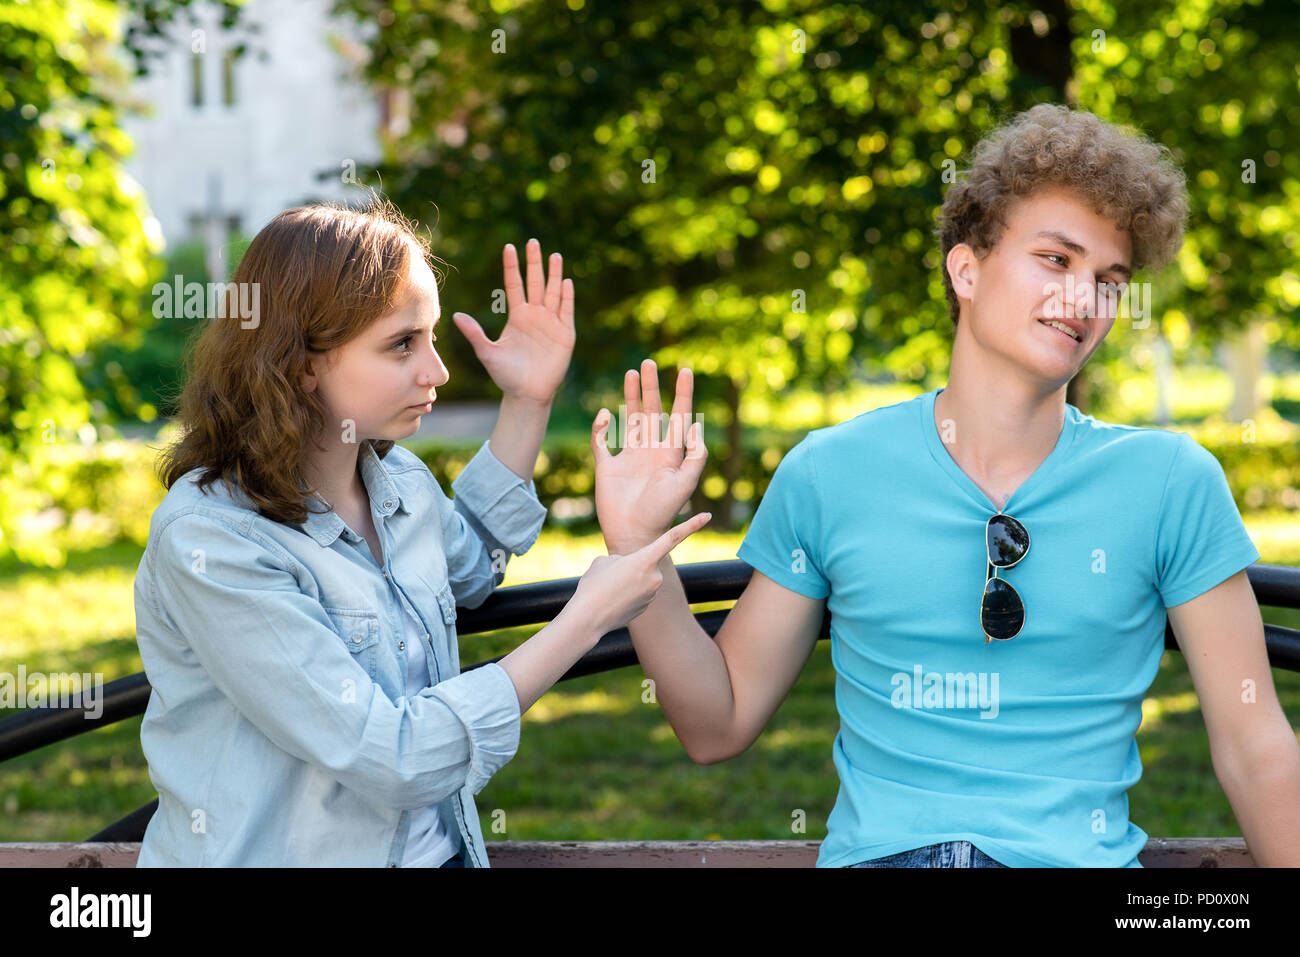 Young married couple. In summer in the park in nature. The girl rebukes the guy. Emotions of mistrust. Insults and insults in the relationship. Problems in family life. - Stock Image